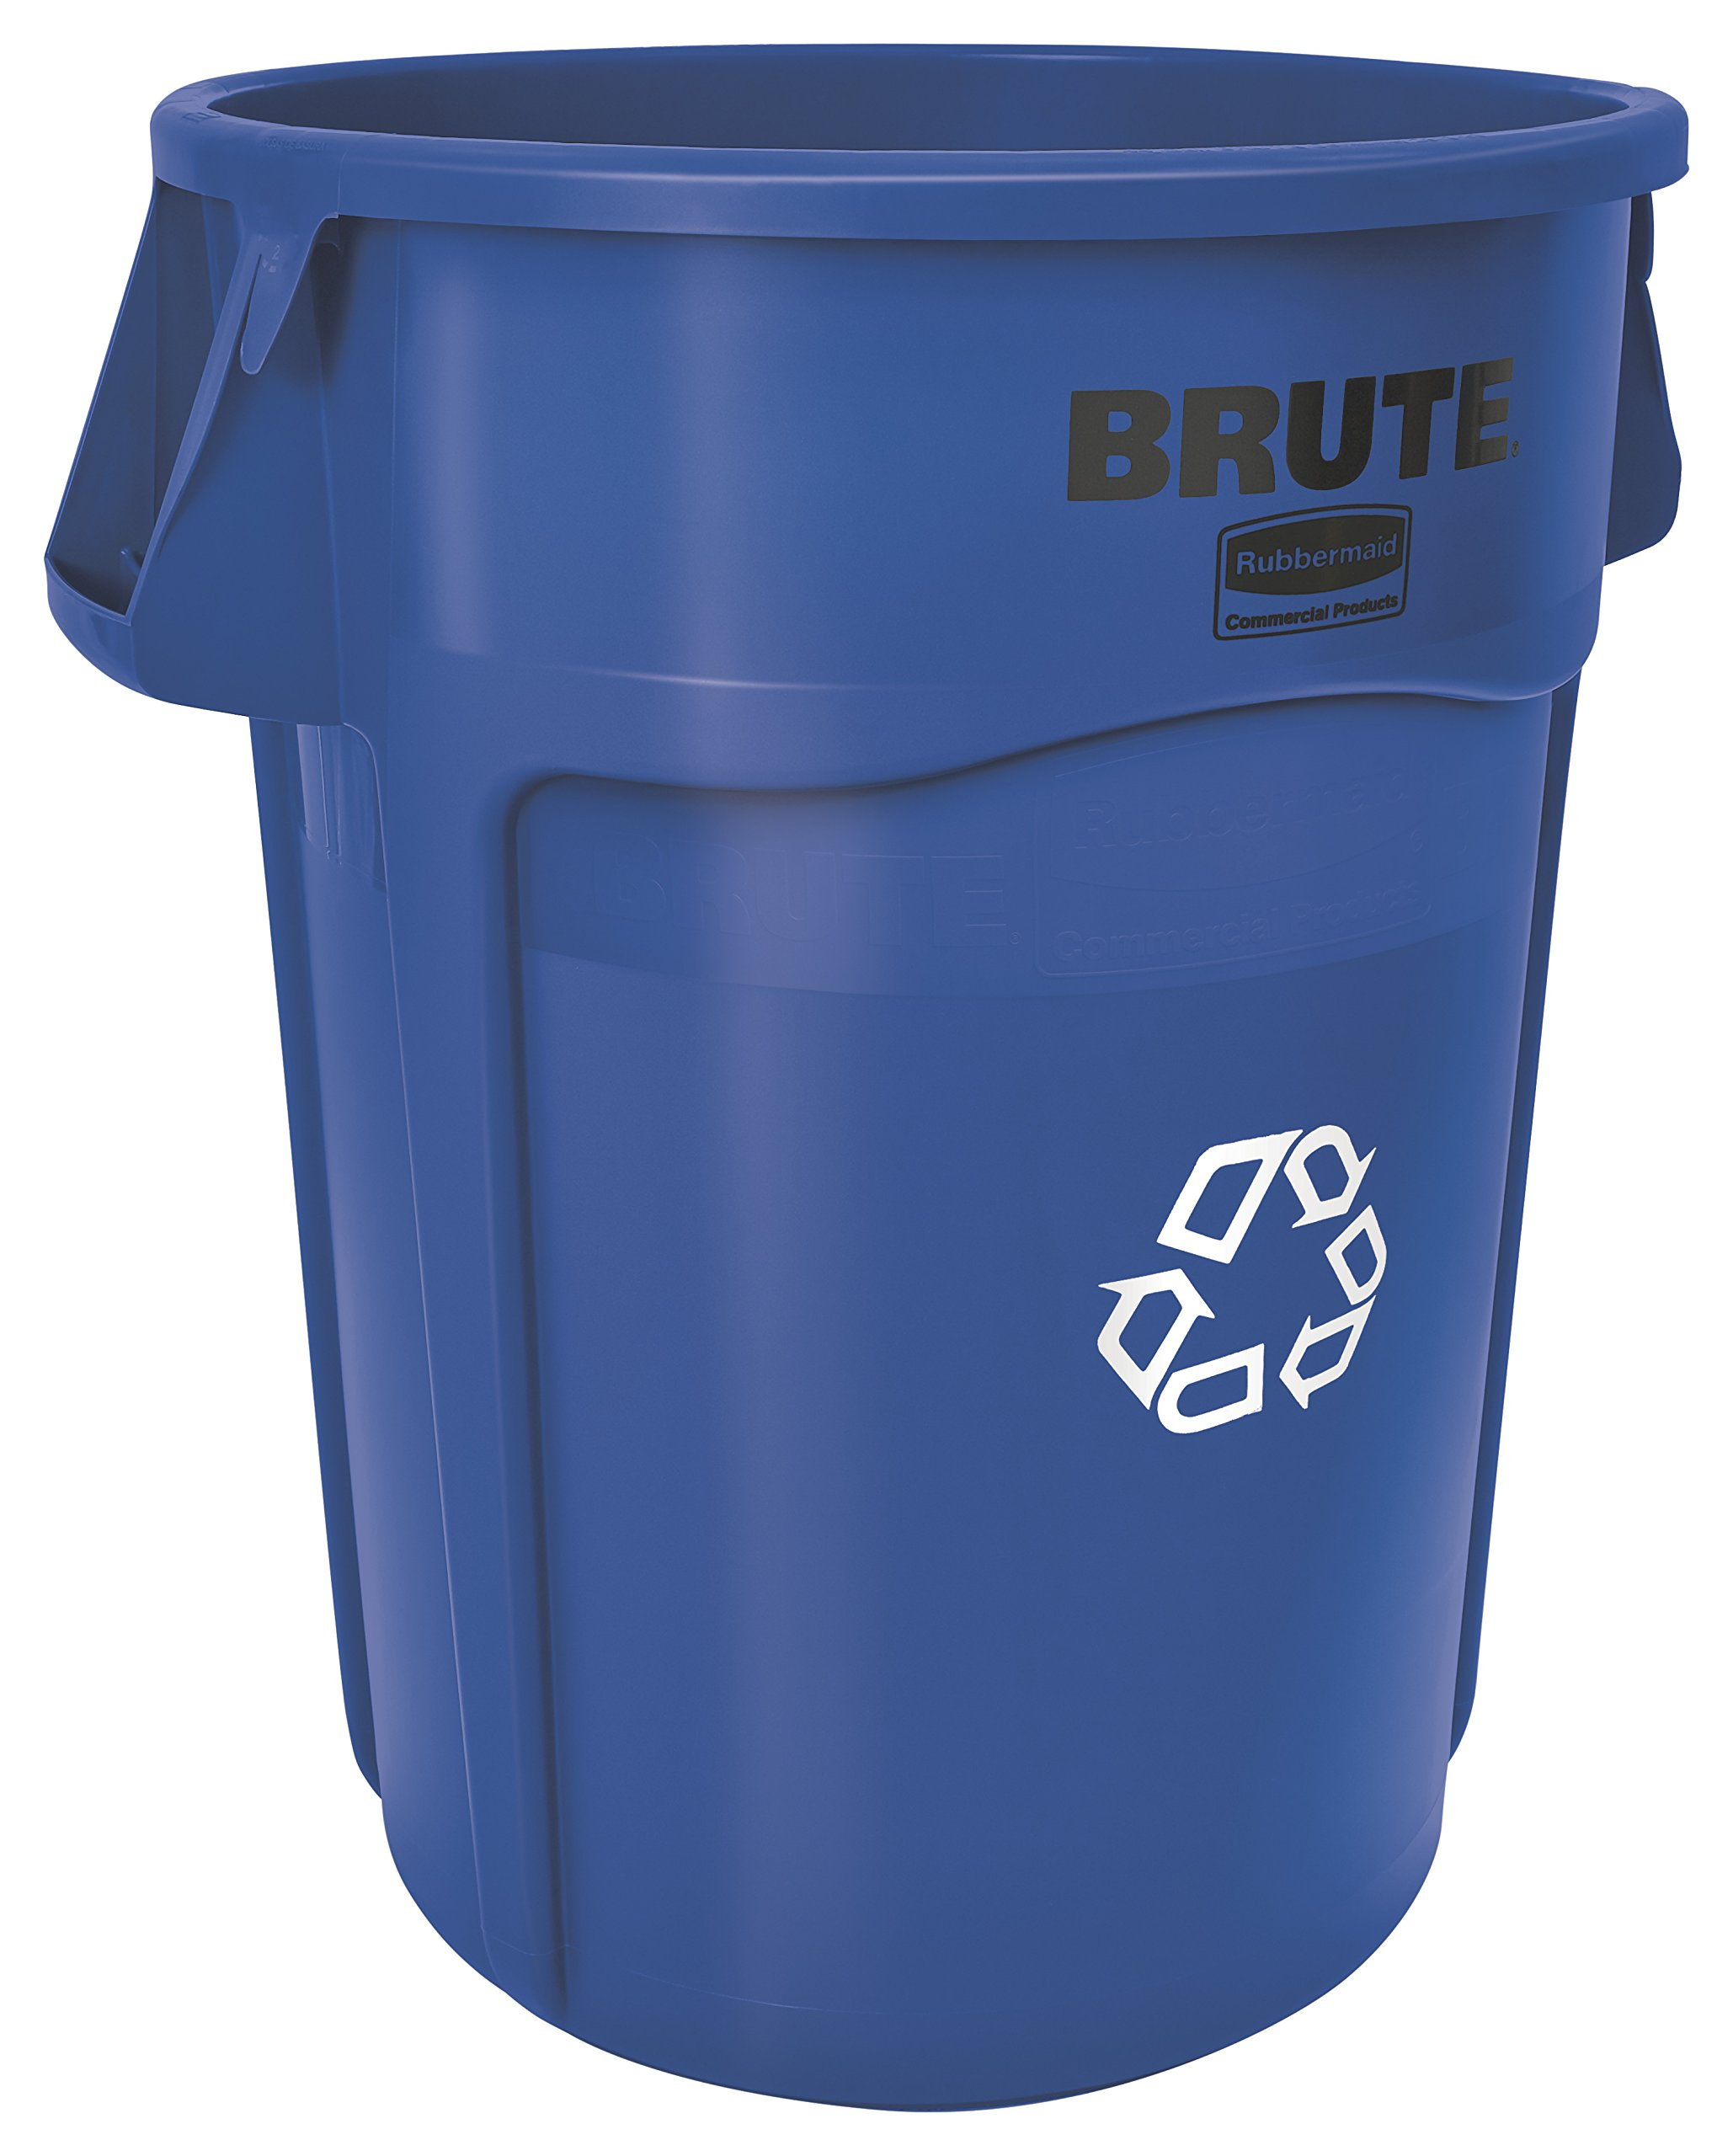 Rubbermaid Commercial FG264307BLUE Brute Plastic 44-Gallon Vented Recycling Container, Round Blue